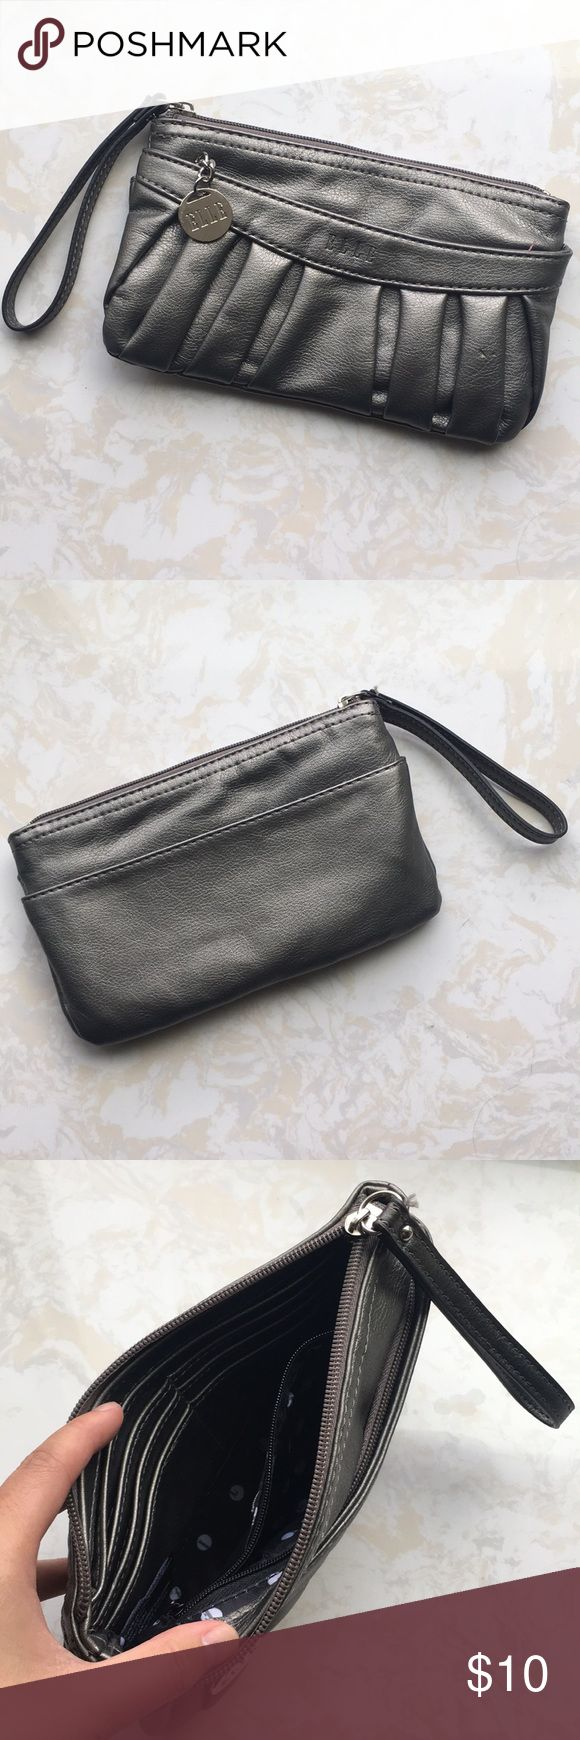 Elle: Grey Clutch/Wristlet Used only once, still in great condition. Perfect to add to your holiday look this winter season 😉 Has credit card compartments! Elle Bags Clutches & Wristlets